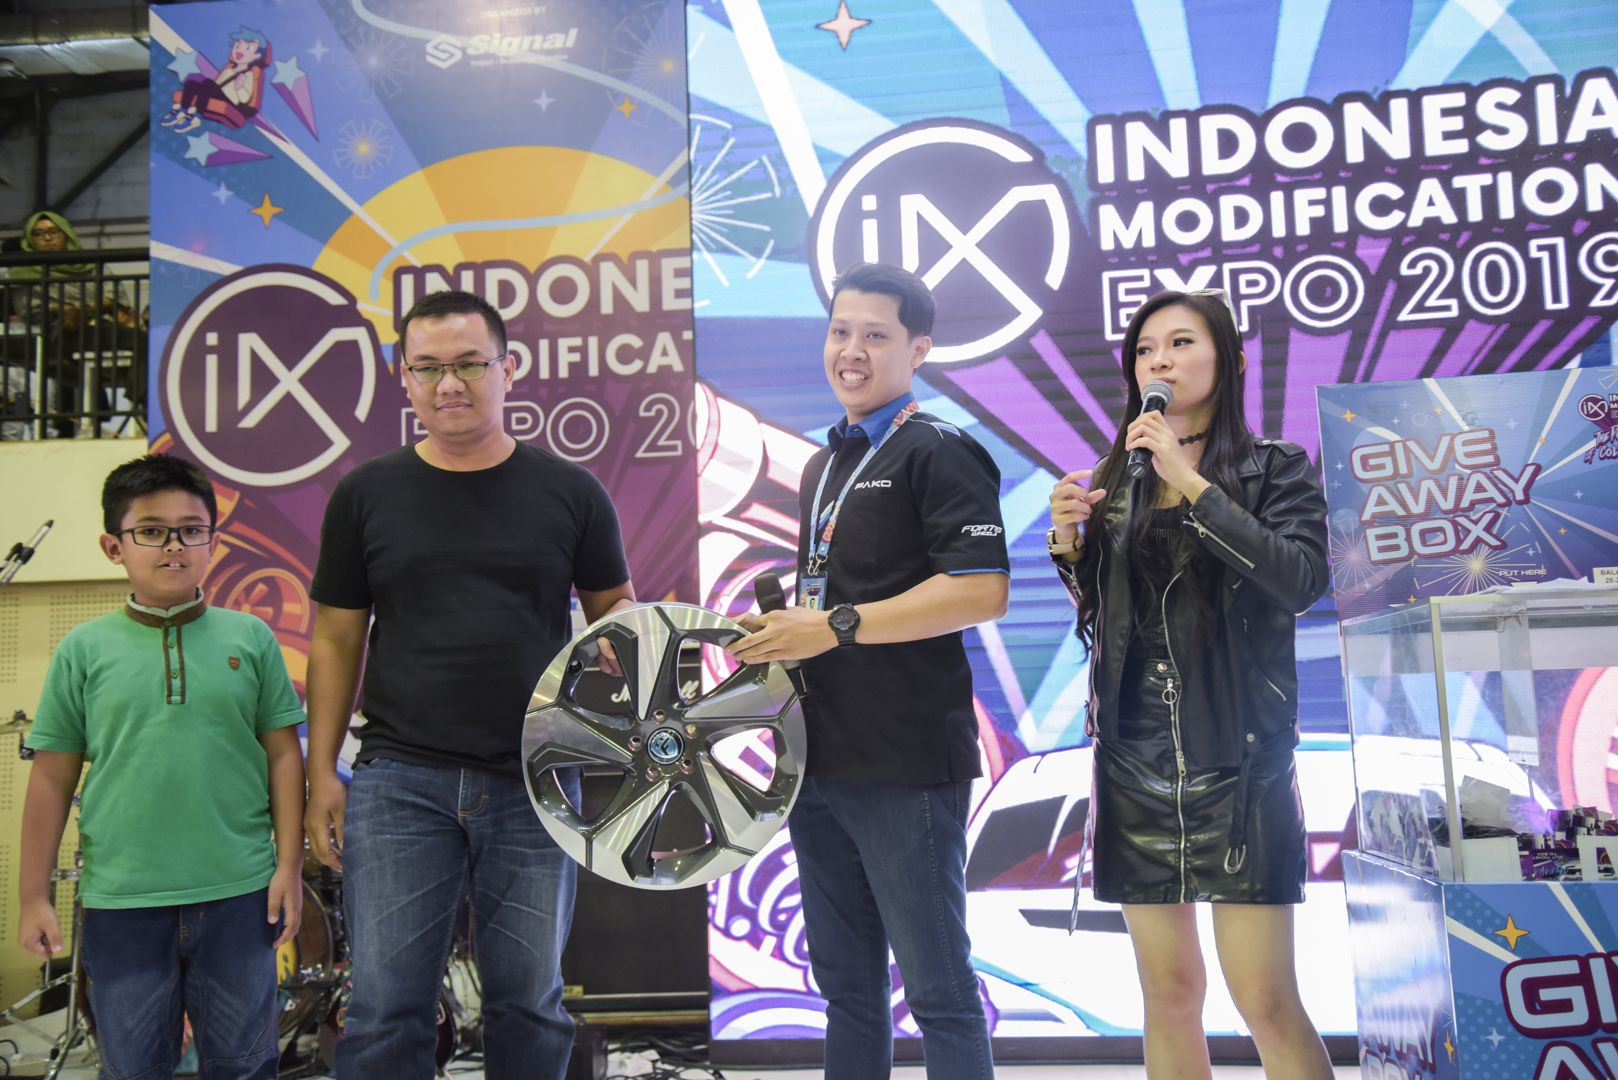 Imx - Indonesia modification expo giveaway 2019 (2)